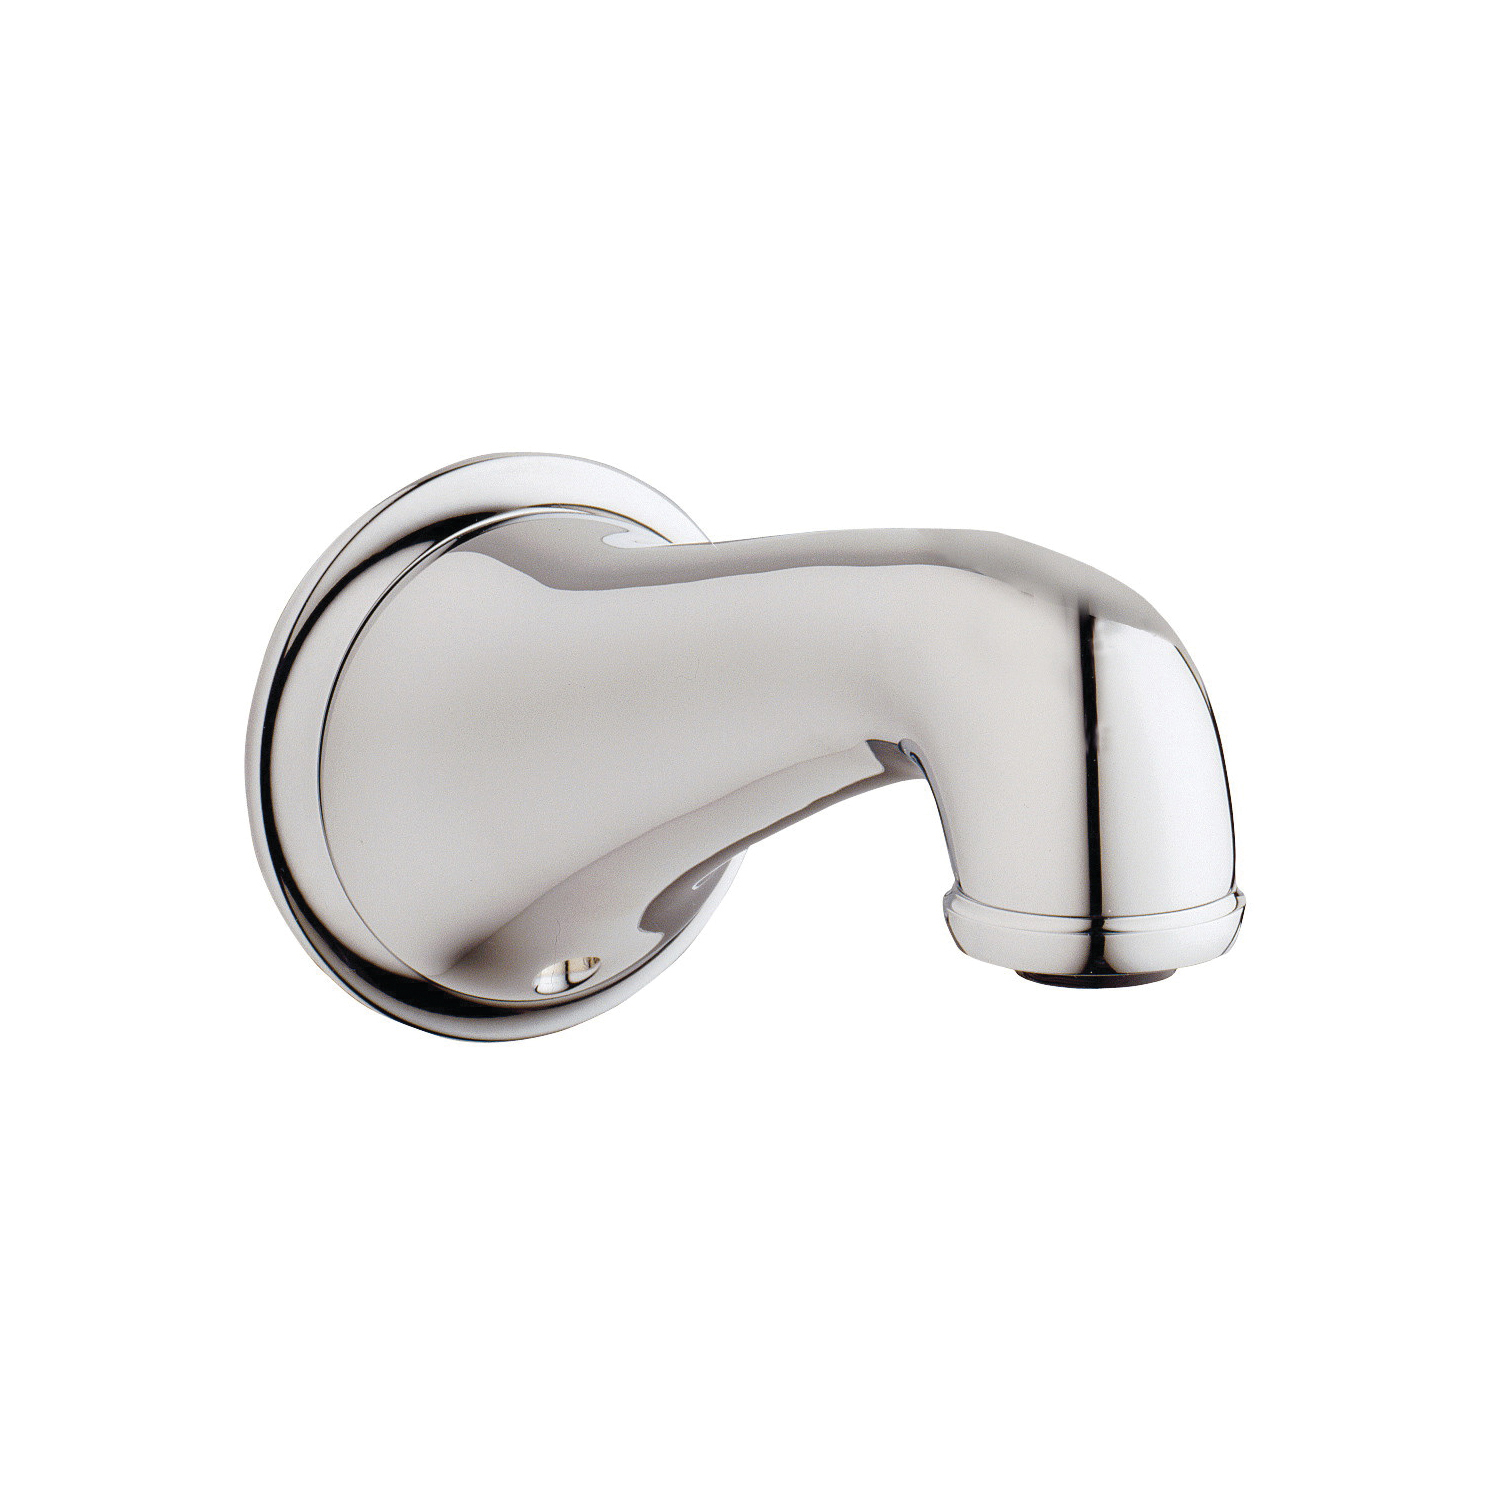 GROHE 13615000 Seabury Wall Mounted Tub Spout, 3/4 in Threaded Connection, 6 in Spout Reach, StarLight® Chrome, Import